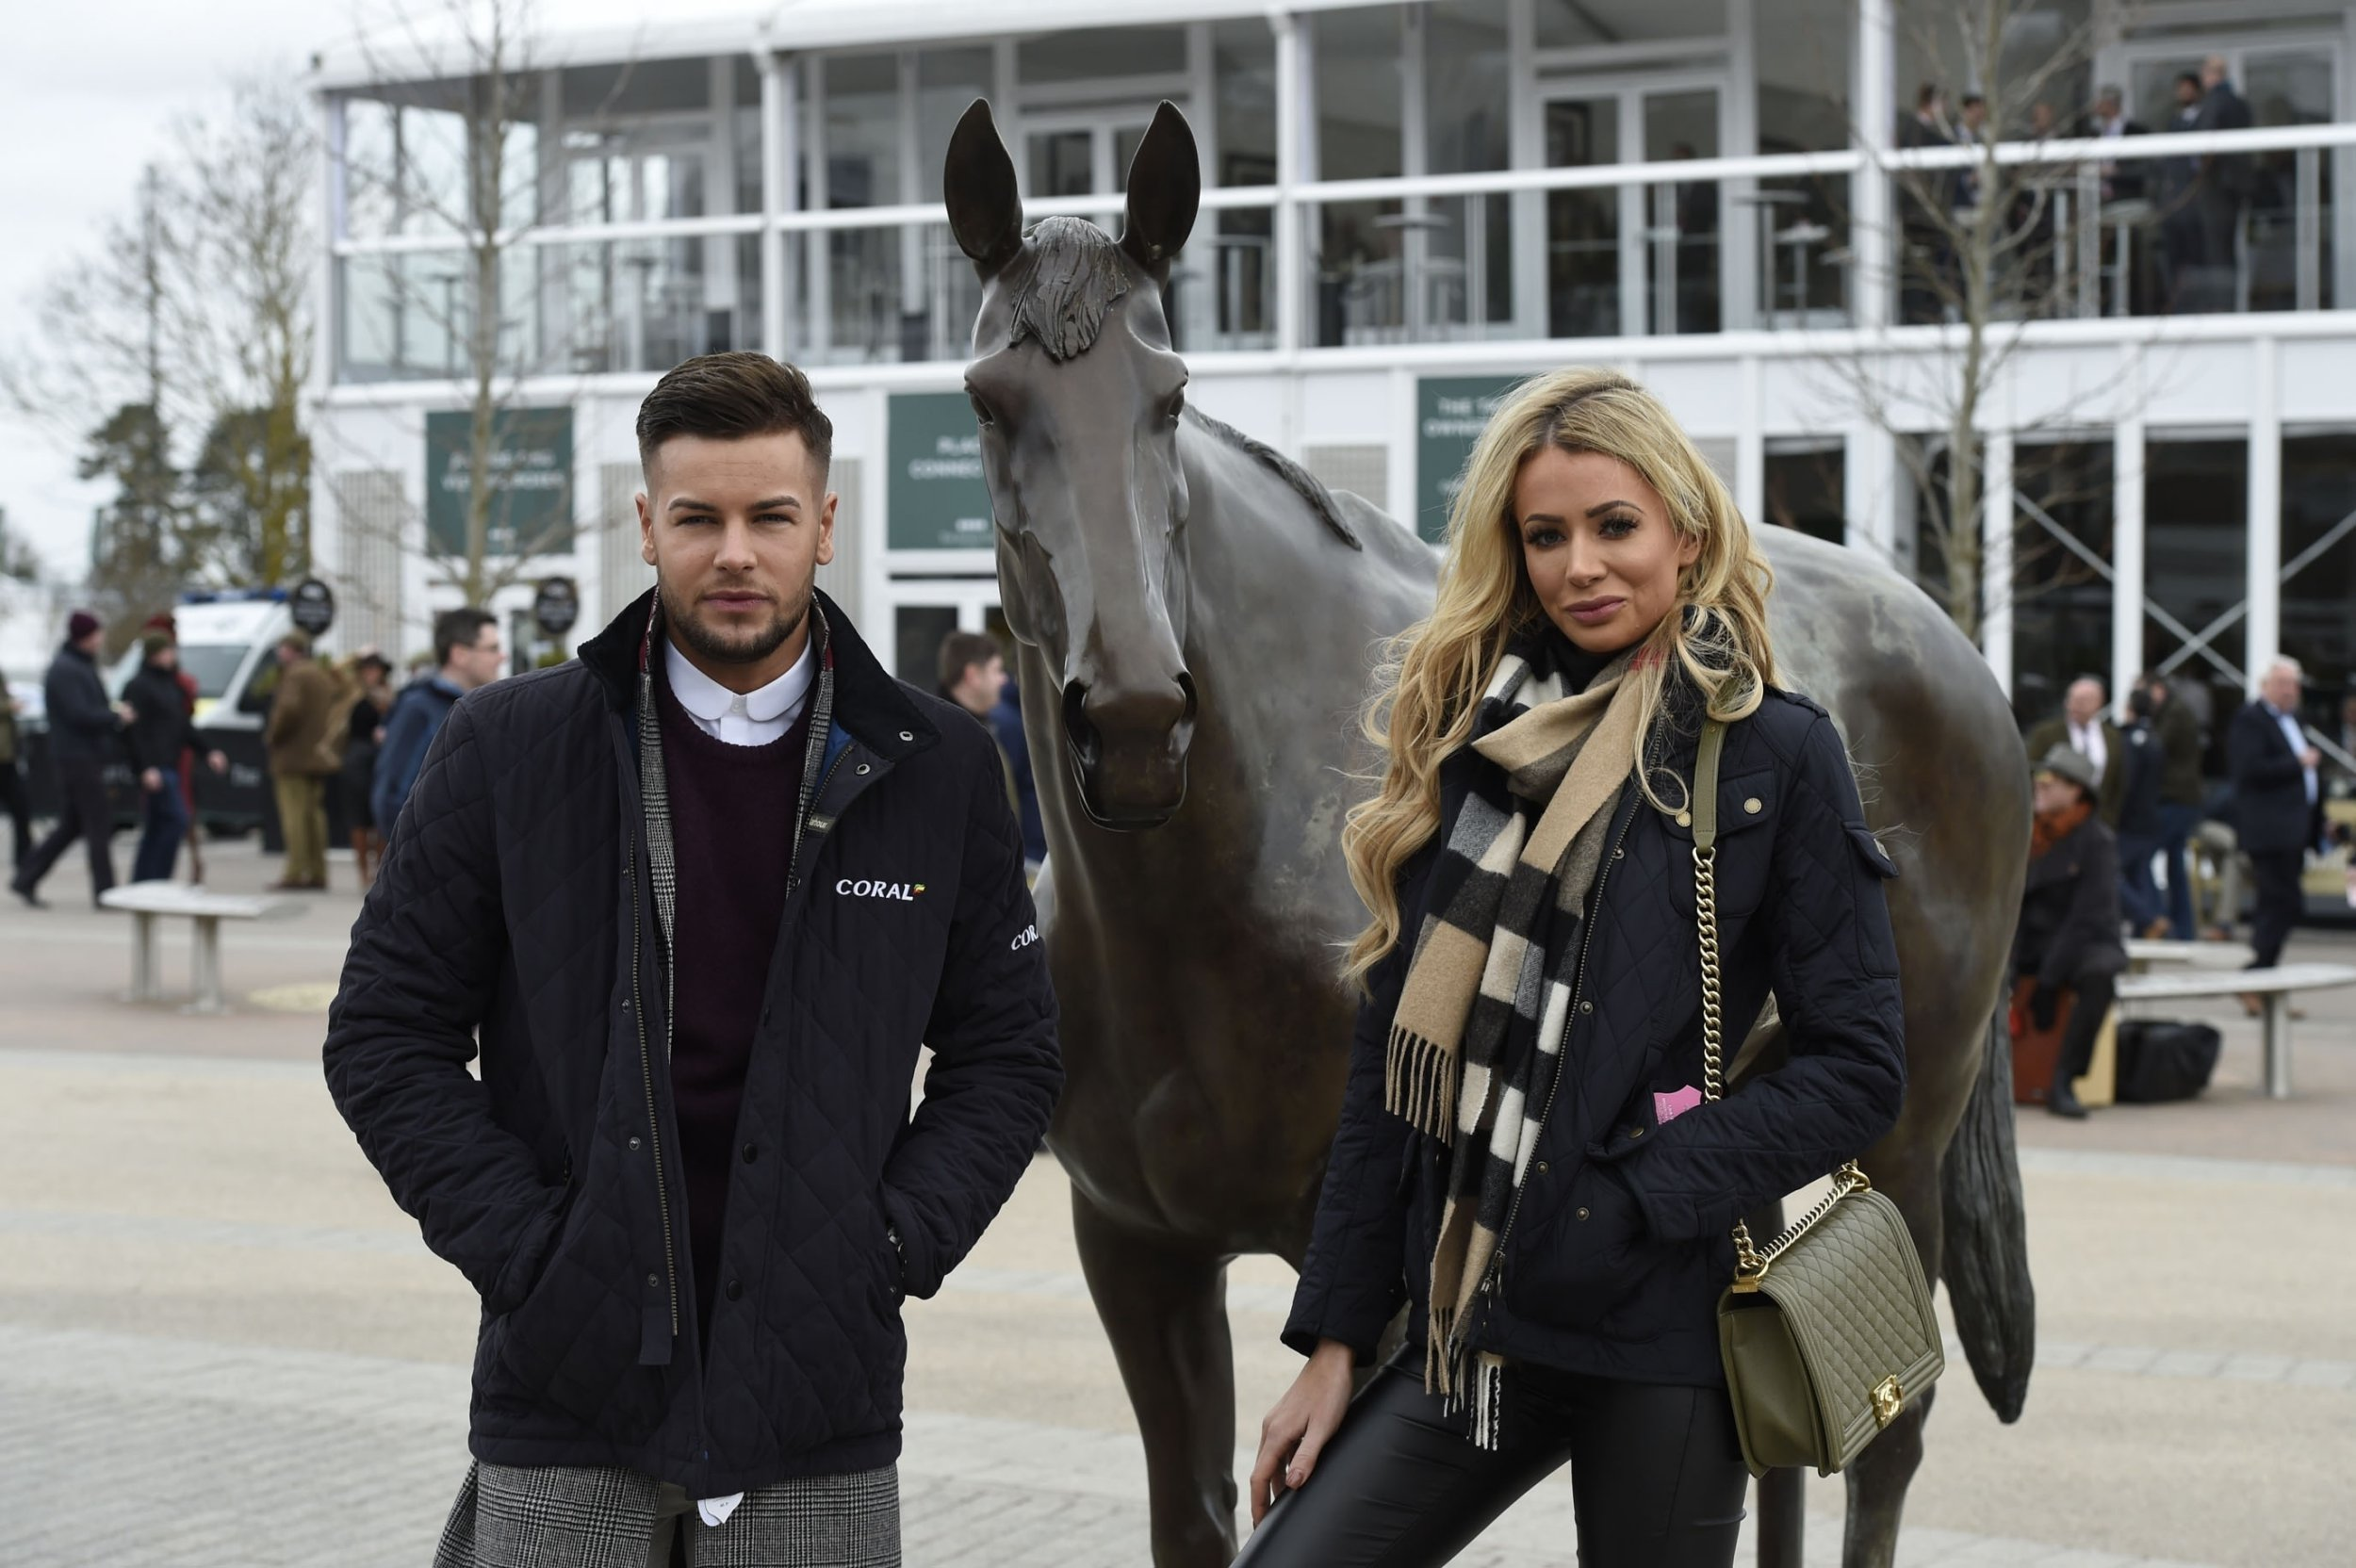 BGUK_1173596 - Cheltenham, UNITED KINGDOM - Celebrities dressed to the nines attending Day 2 of the 2018 Cheltenham Festival. Pictured: Chris Hughes and Olivia Attwood BACKGRID UK 14 MARCH 2018 BYLINE MUST READ: James Watkins / BACKGRID UK: +44 208 344 2007 / uksales@backgrid.com USA: +1 310 798 9111 / usasales@backgrid.com *UK Clients - Pictures Containing Children Please Pixelate Face Prior To Publication*